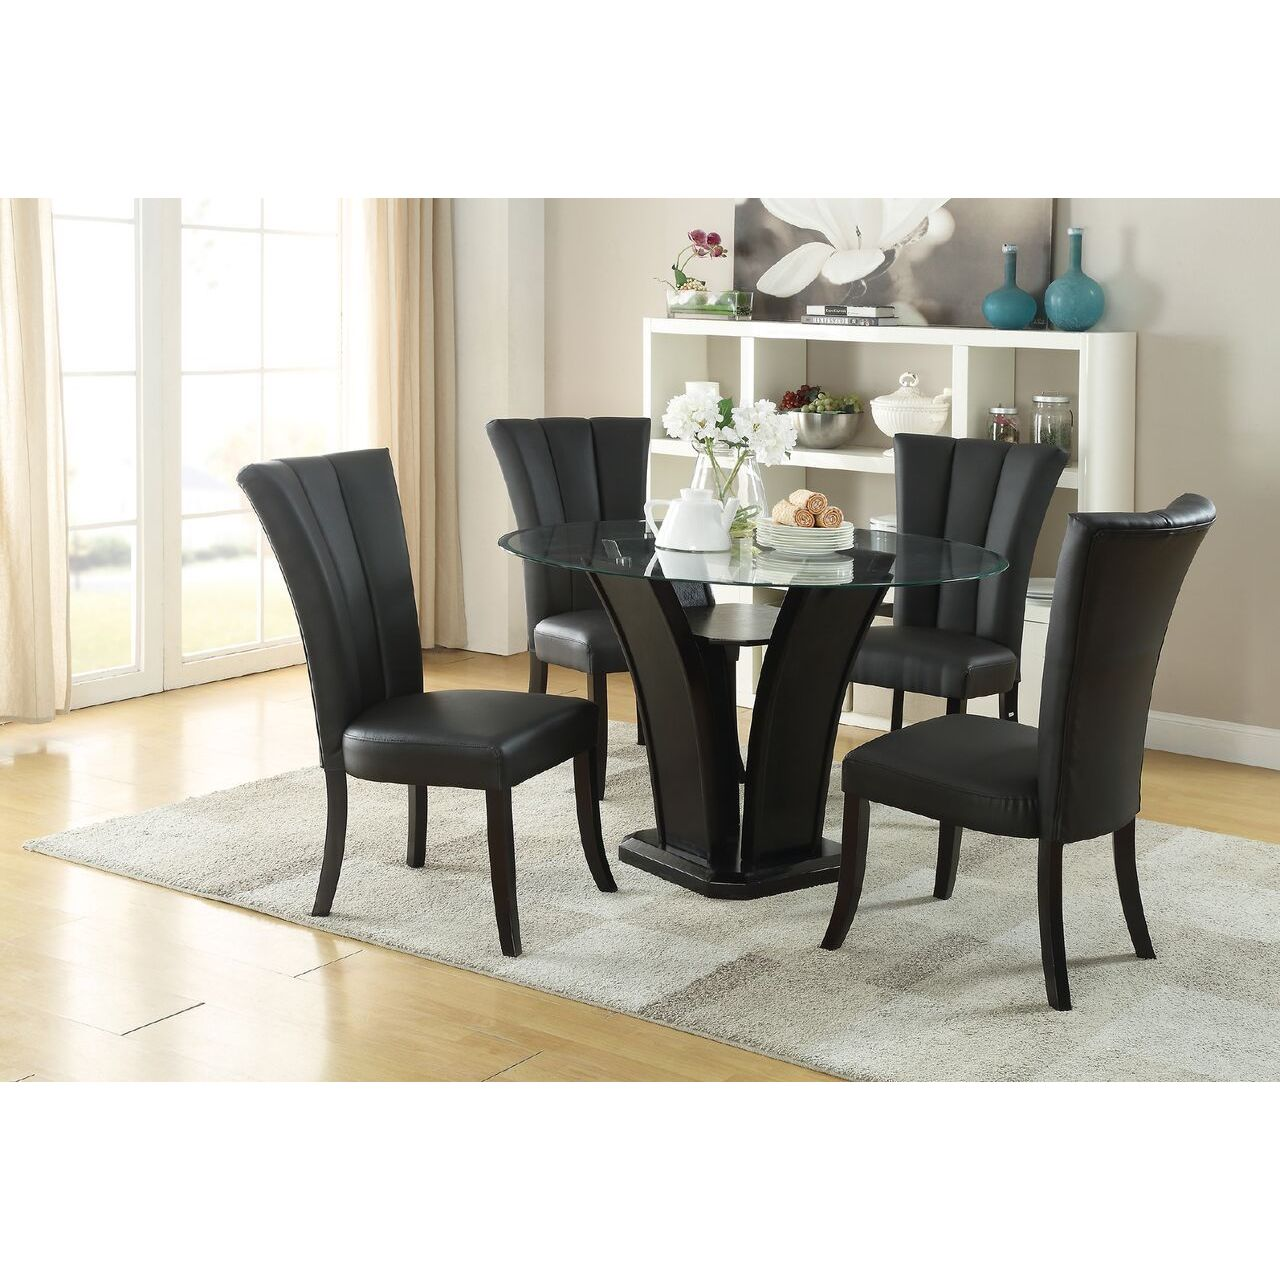 Shop Adrien Dining Chairs Set of 4